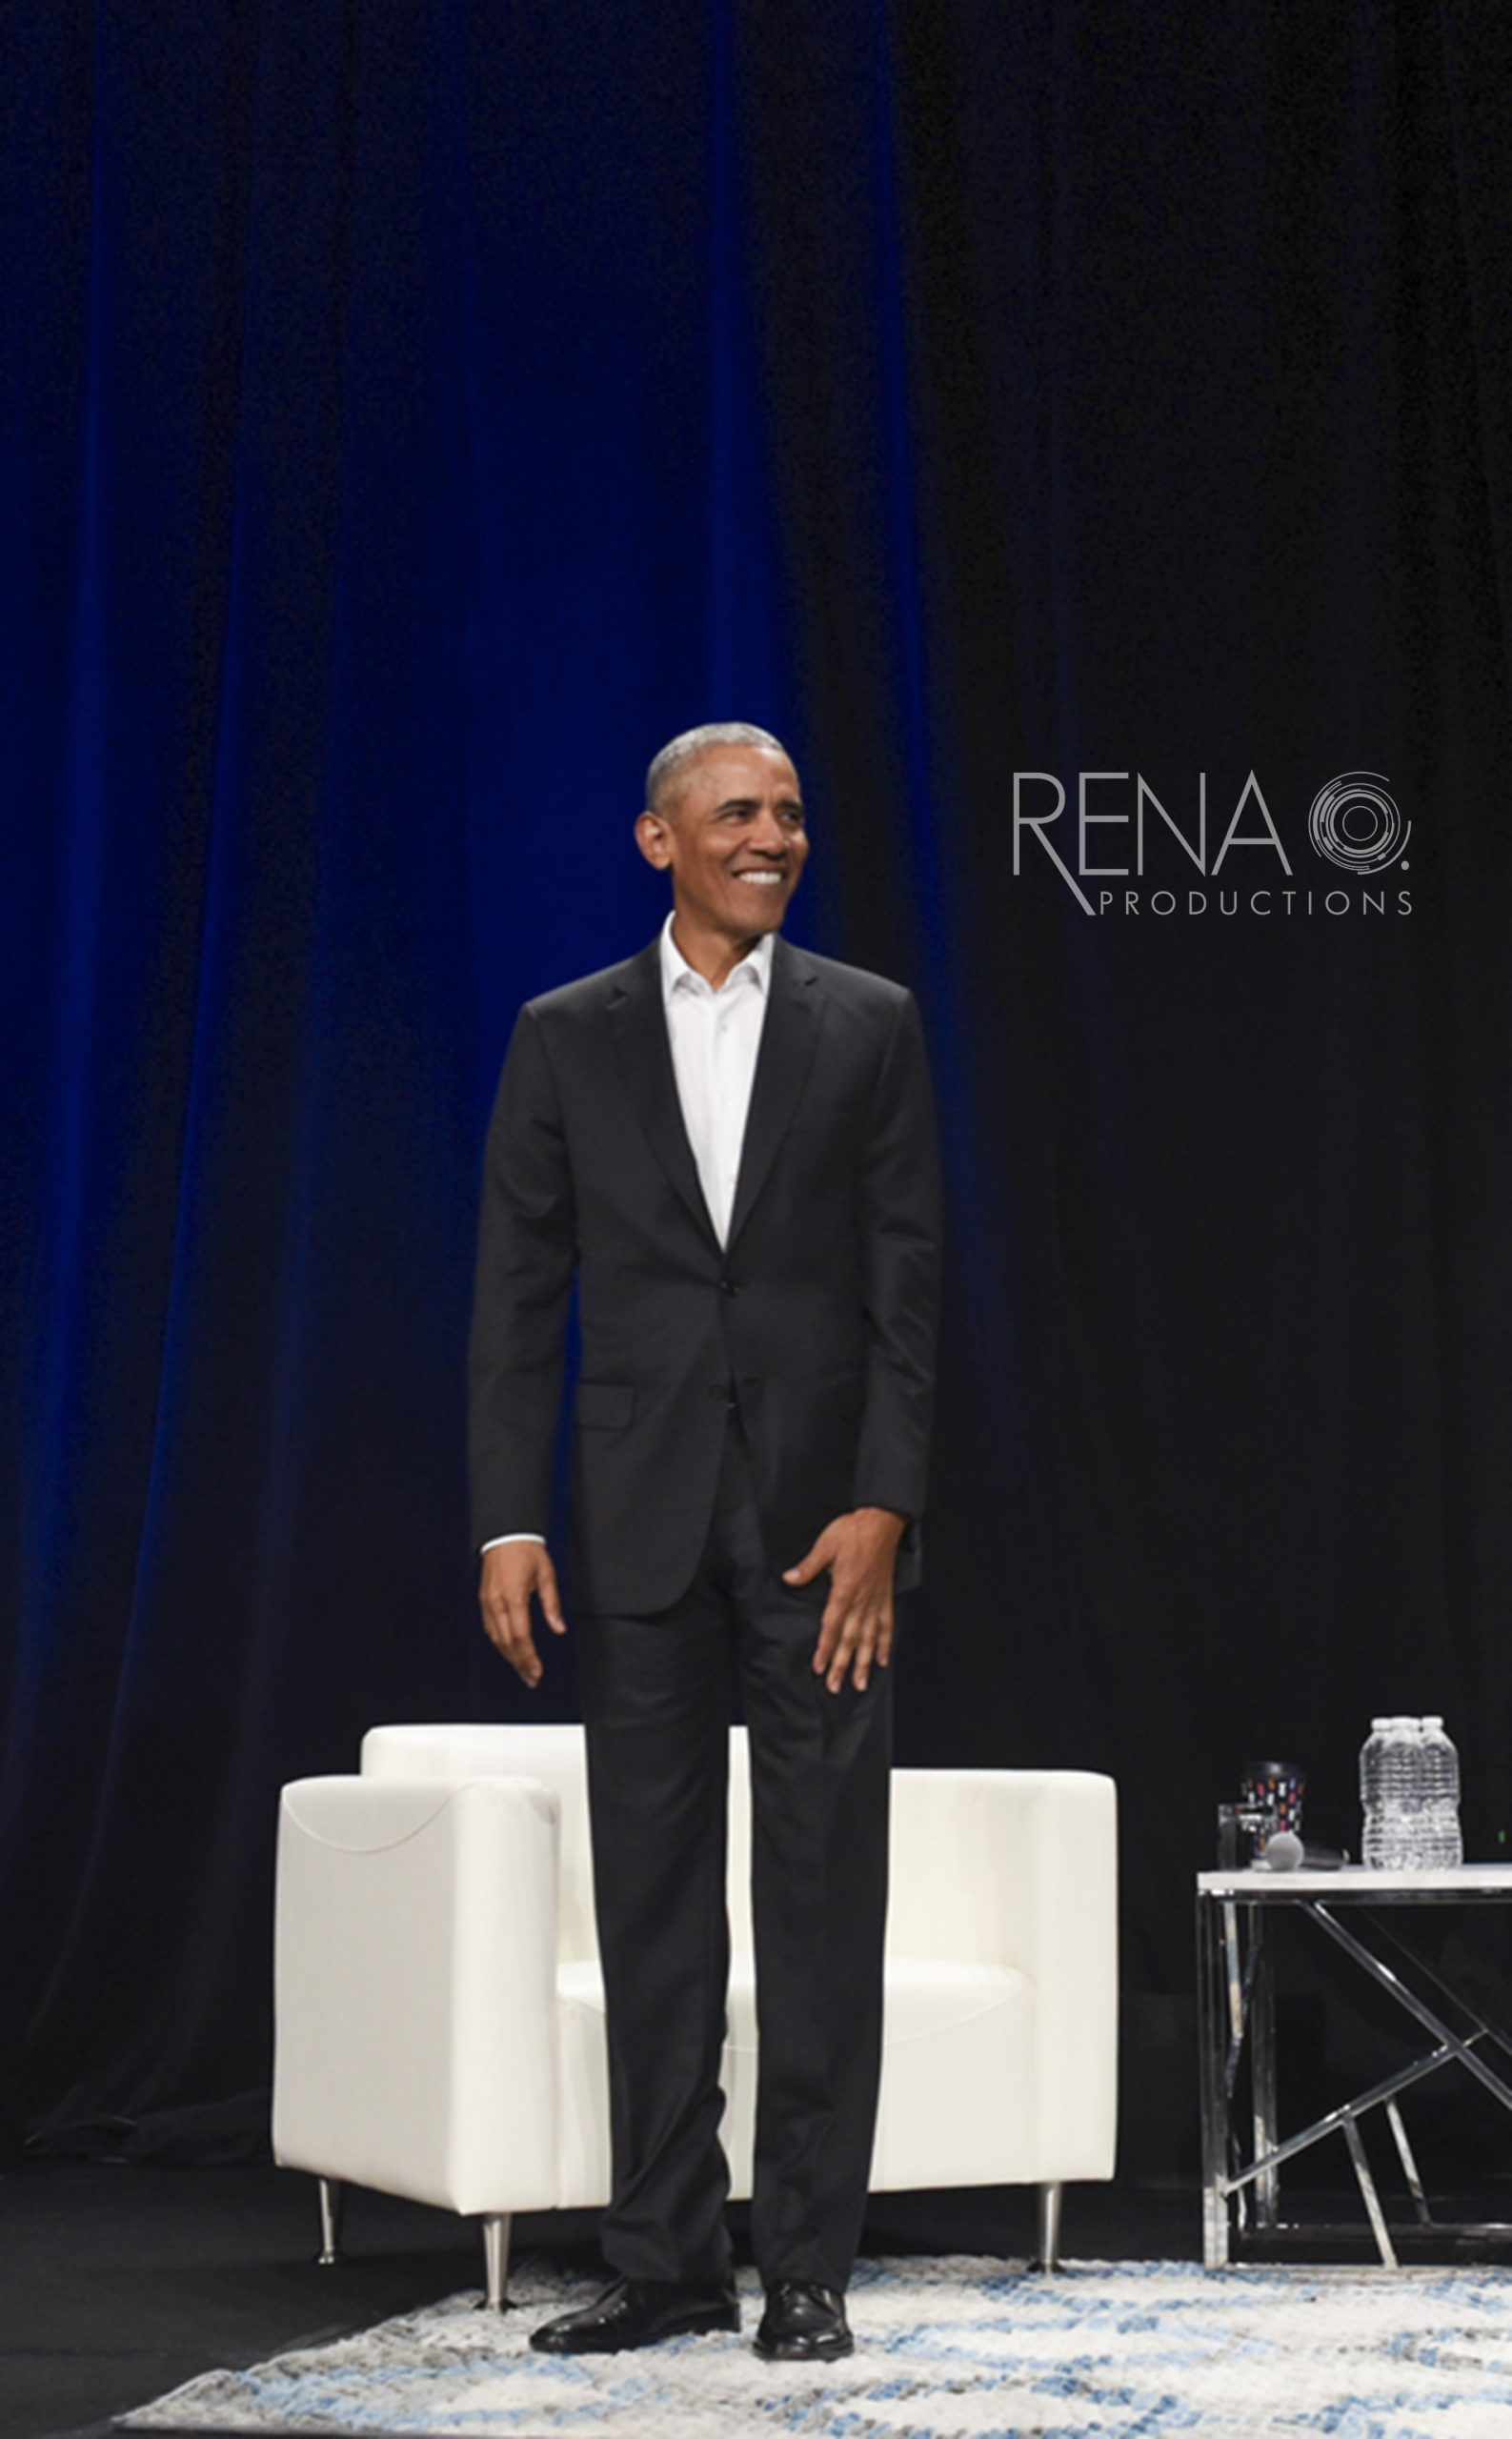 Barack Obama speaking at a conference